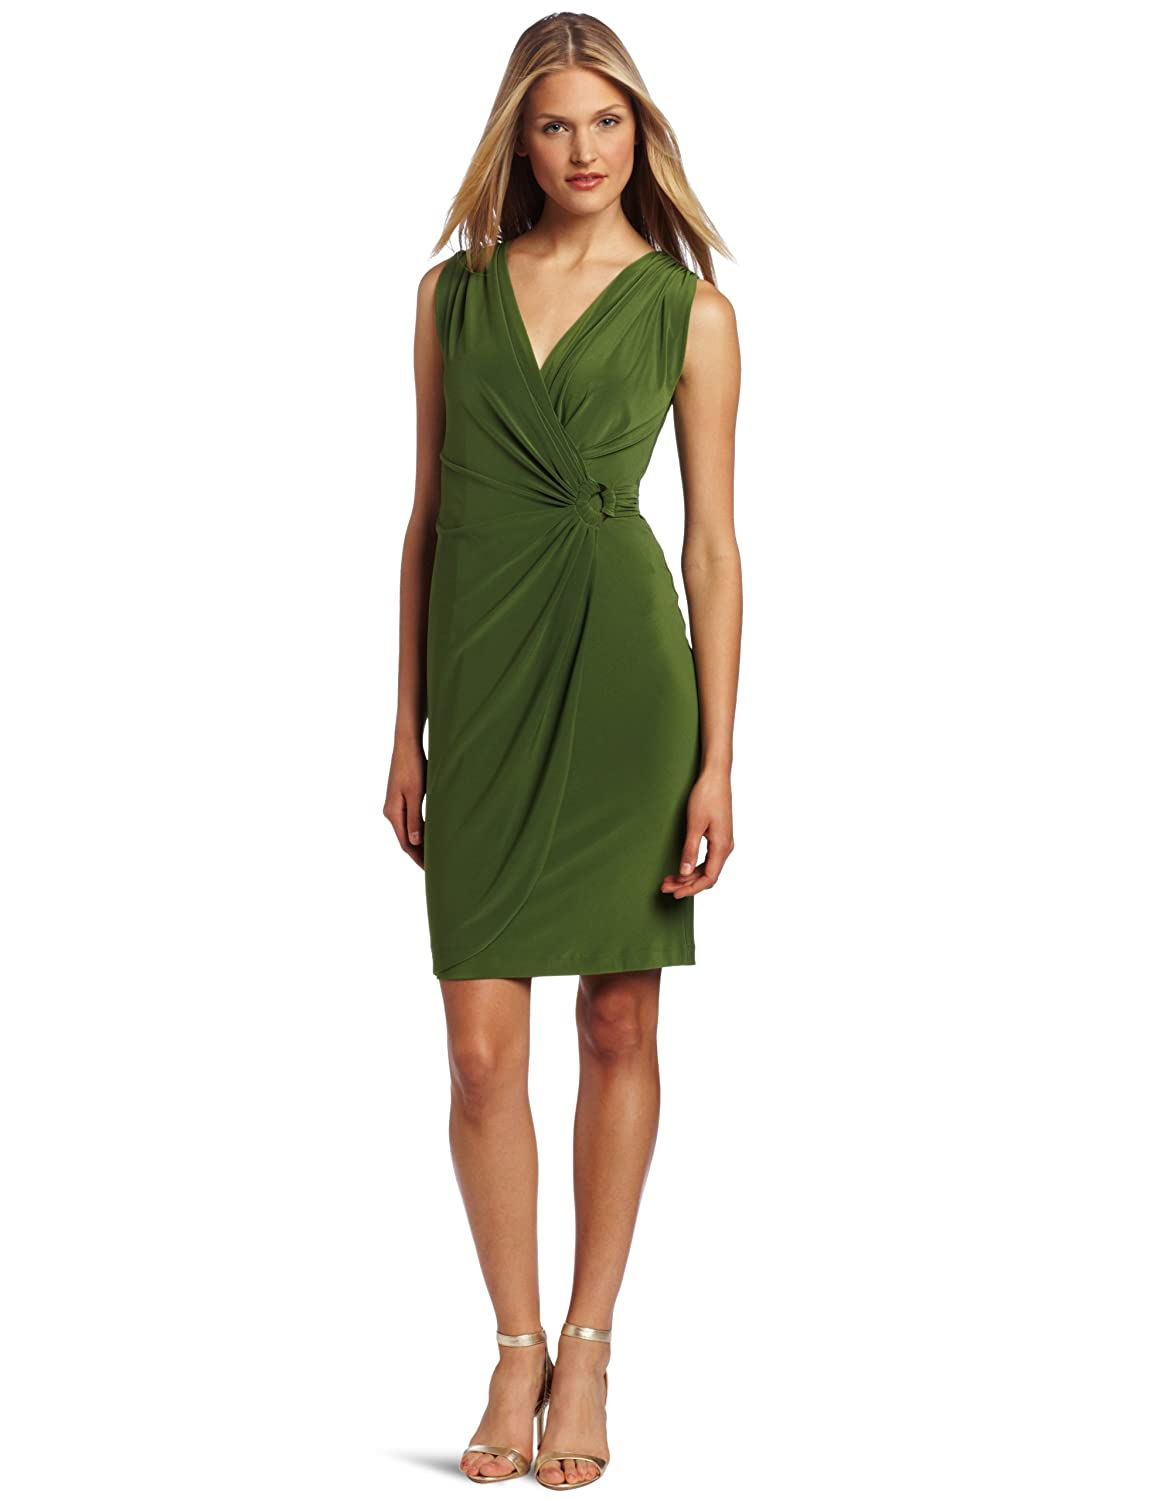 D-shopz: Jones New York Women's Grecian Wrap Ring Dress